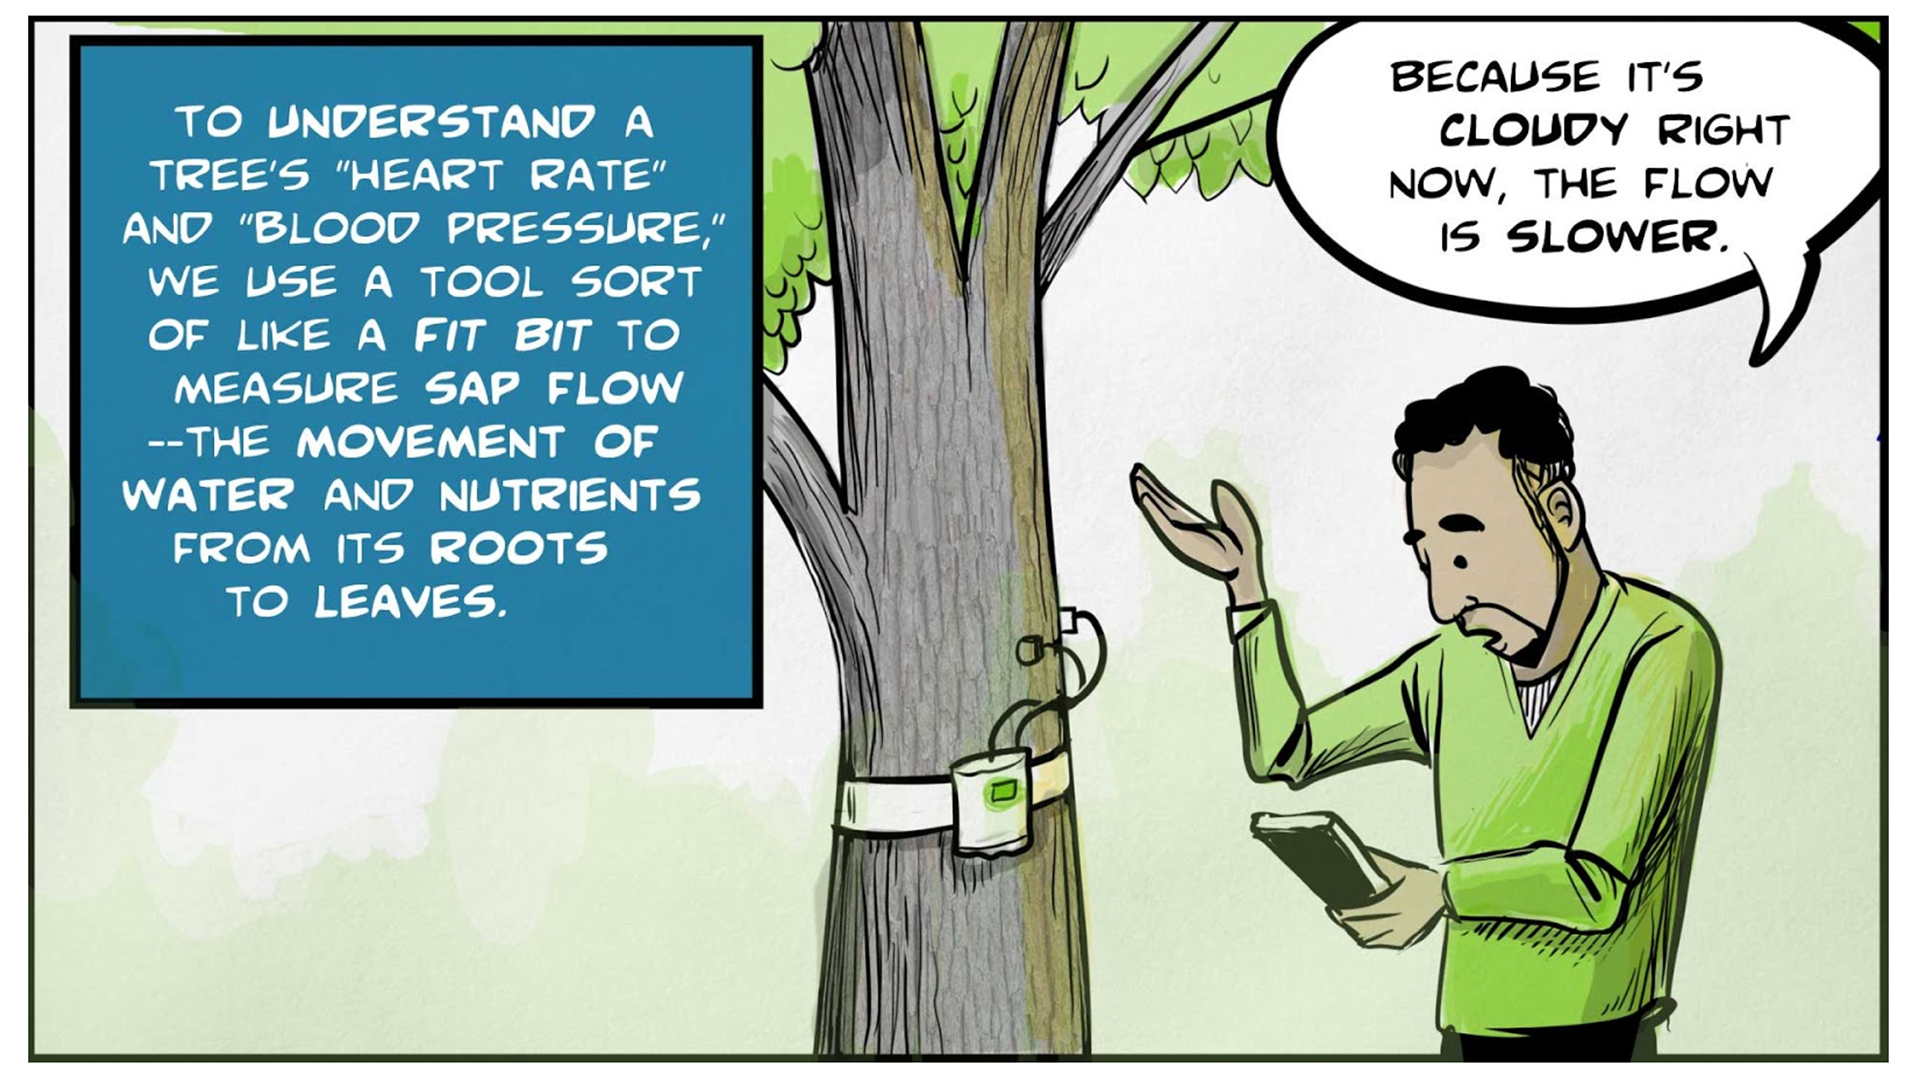 """Felix, the narrator, says, """"To understand a tree's 'heart rate' and 'blood pressure,' we use a tool sort of like a Fit Bit to measure sap flow -- the movement of water and nutrients from its roots to leaves."""" He stands by a tree, looking at a tablet in his hand and gesturing with his hand. The tree has a band around its trunk with a device measuring sap flow. Felix says, """"Because it's cloudy right now, the flow is slower."""""""